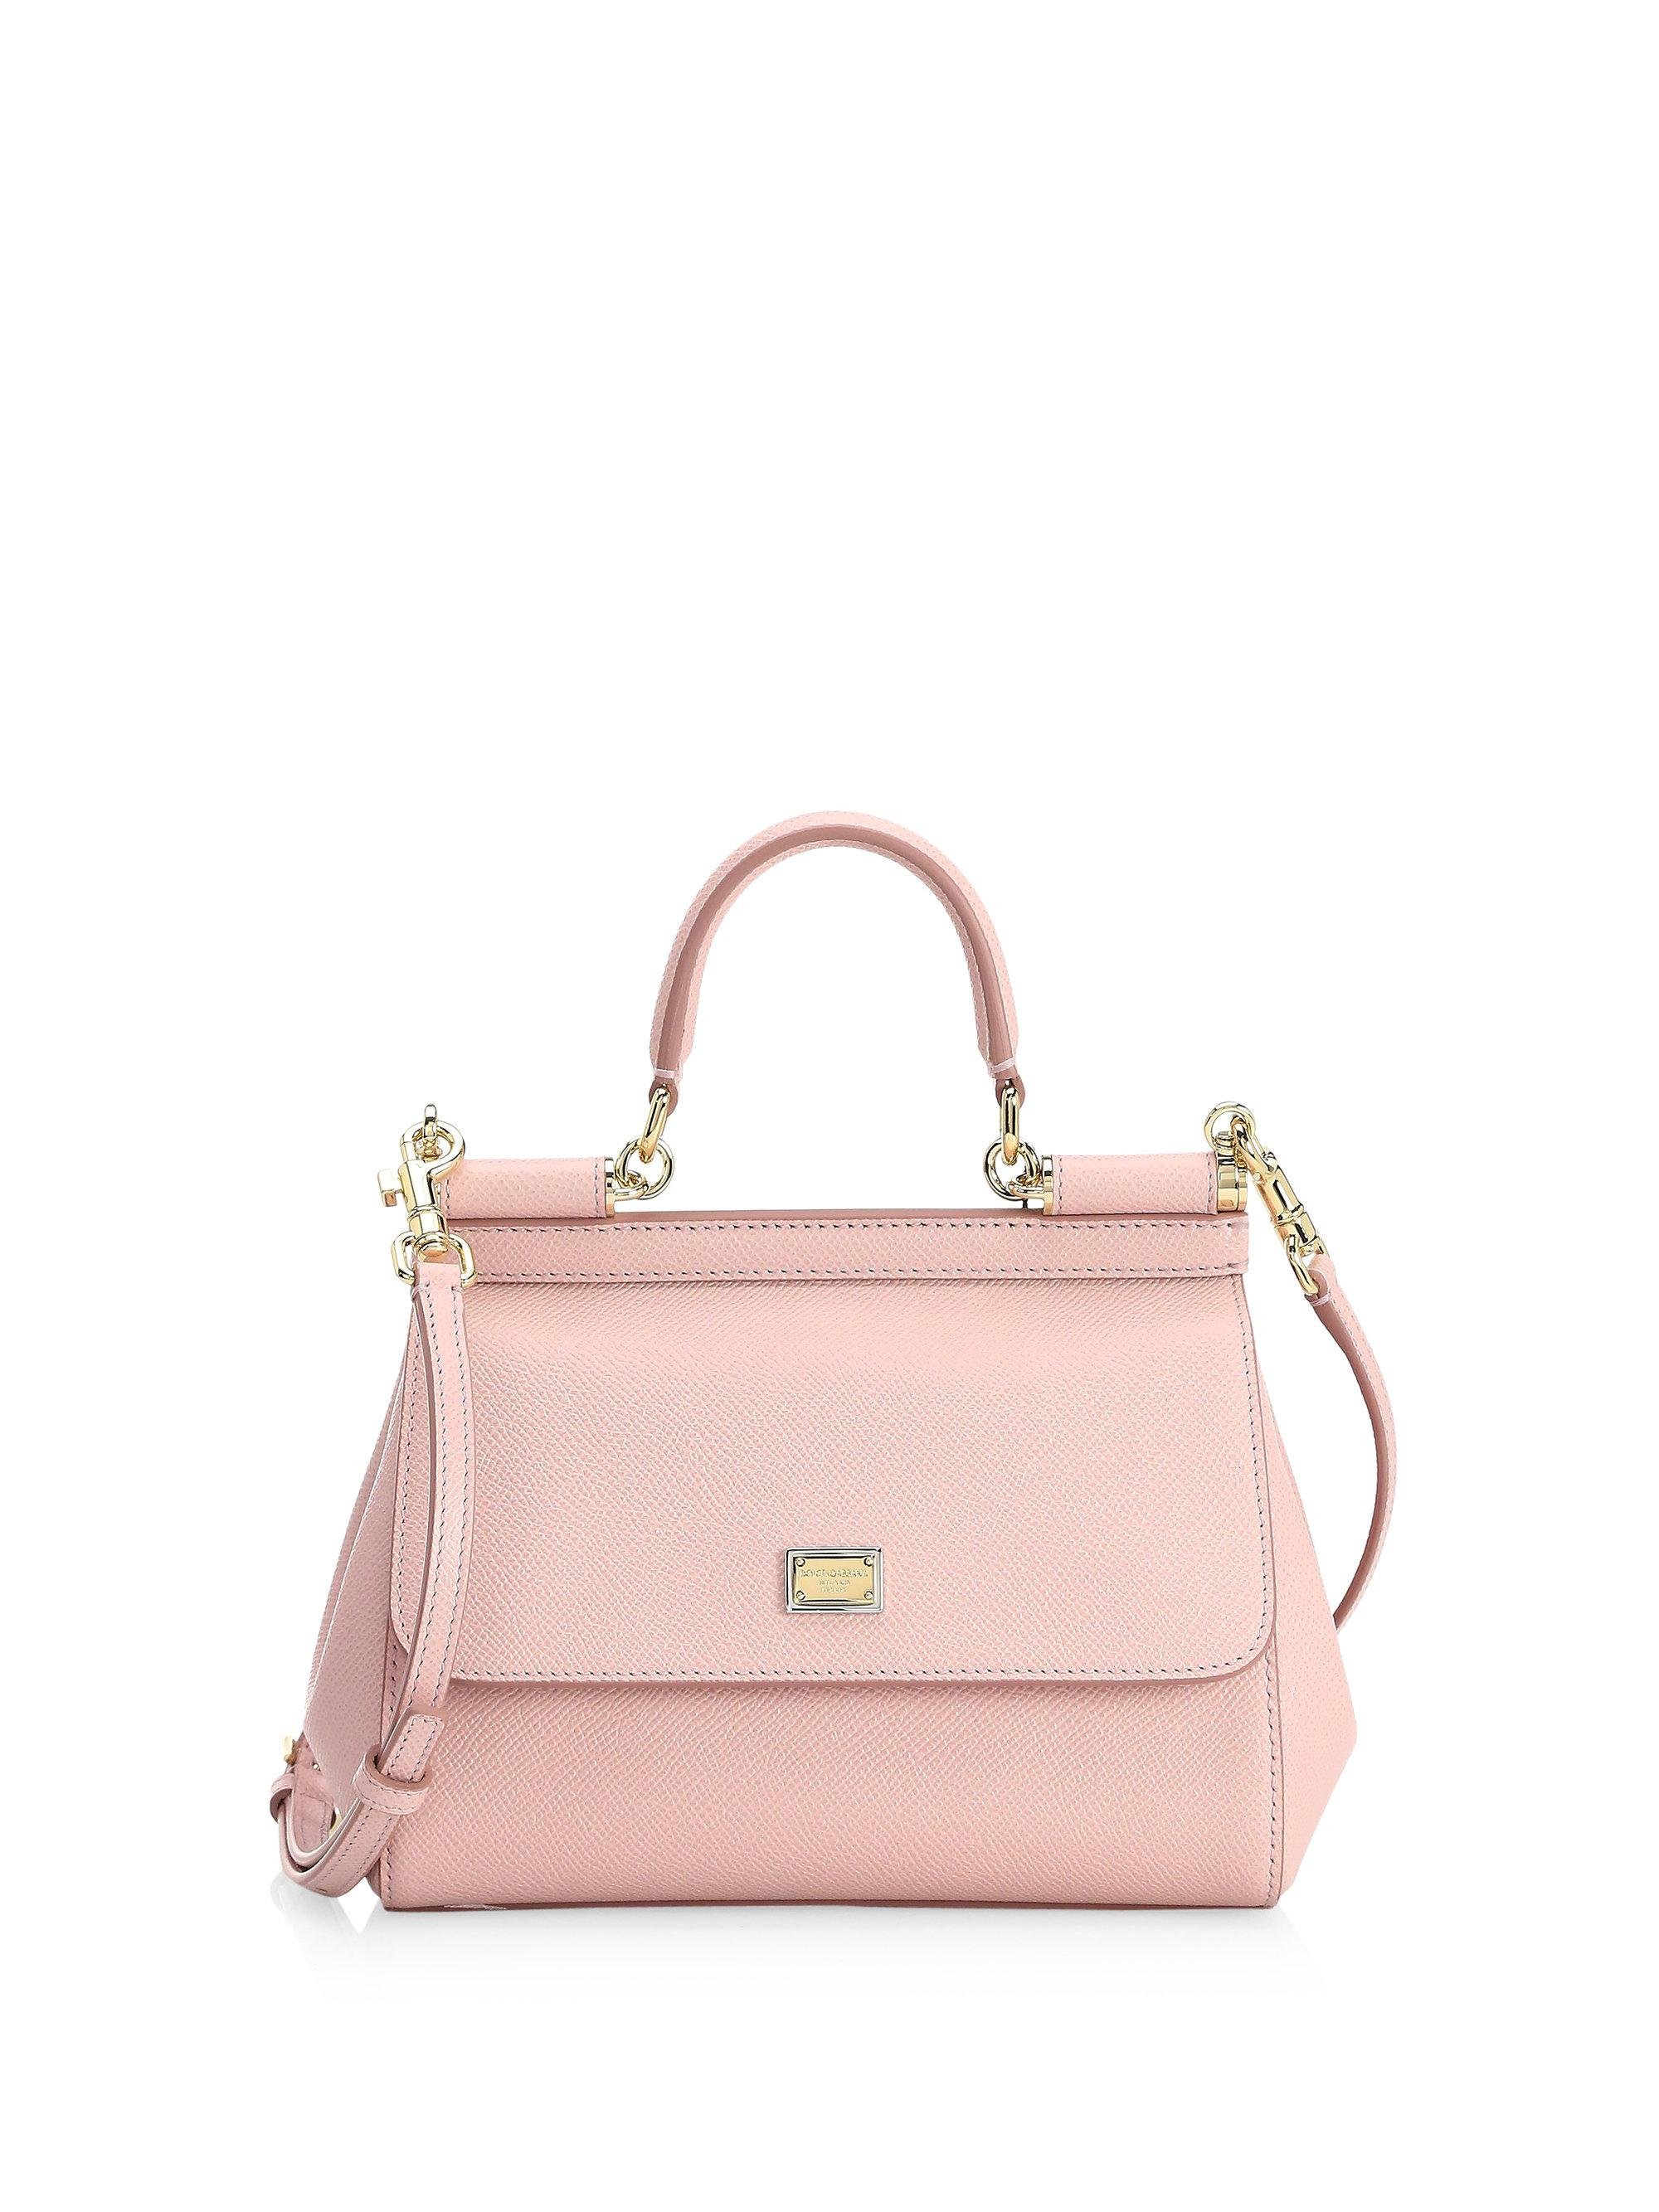 a7c2b2f55b Dolce & Gabbana Small Sicily Leather Top Handle Satchel in Pink - Lyst